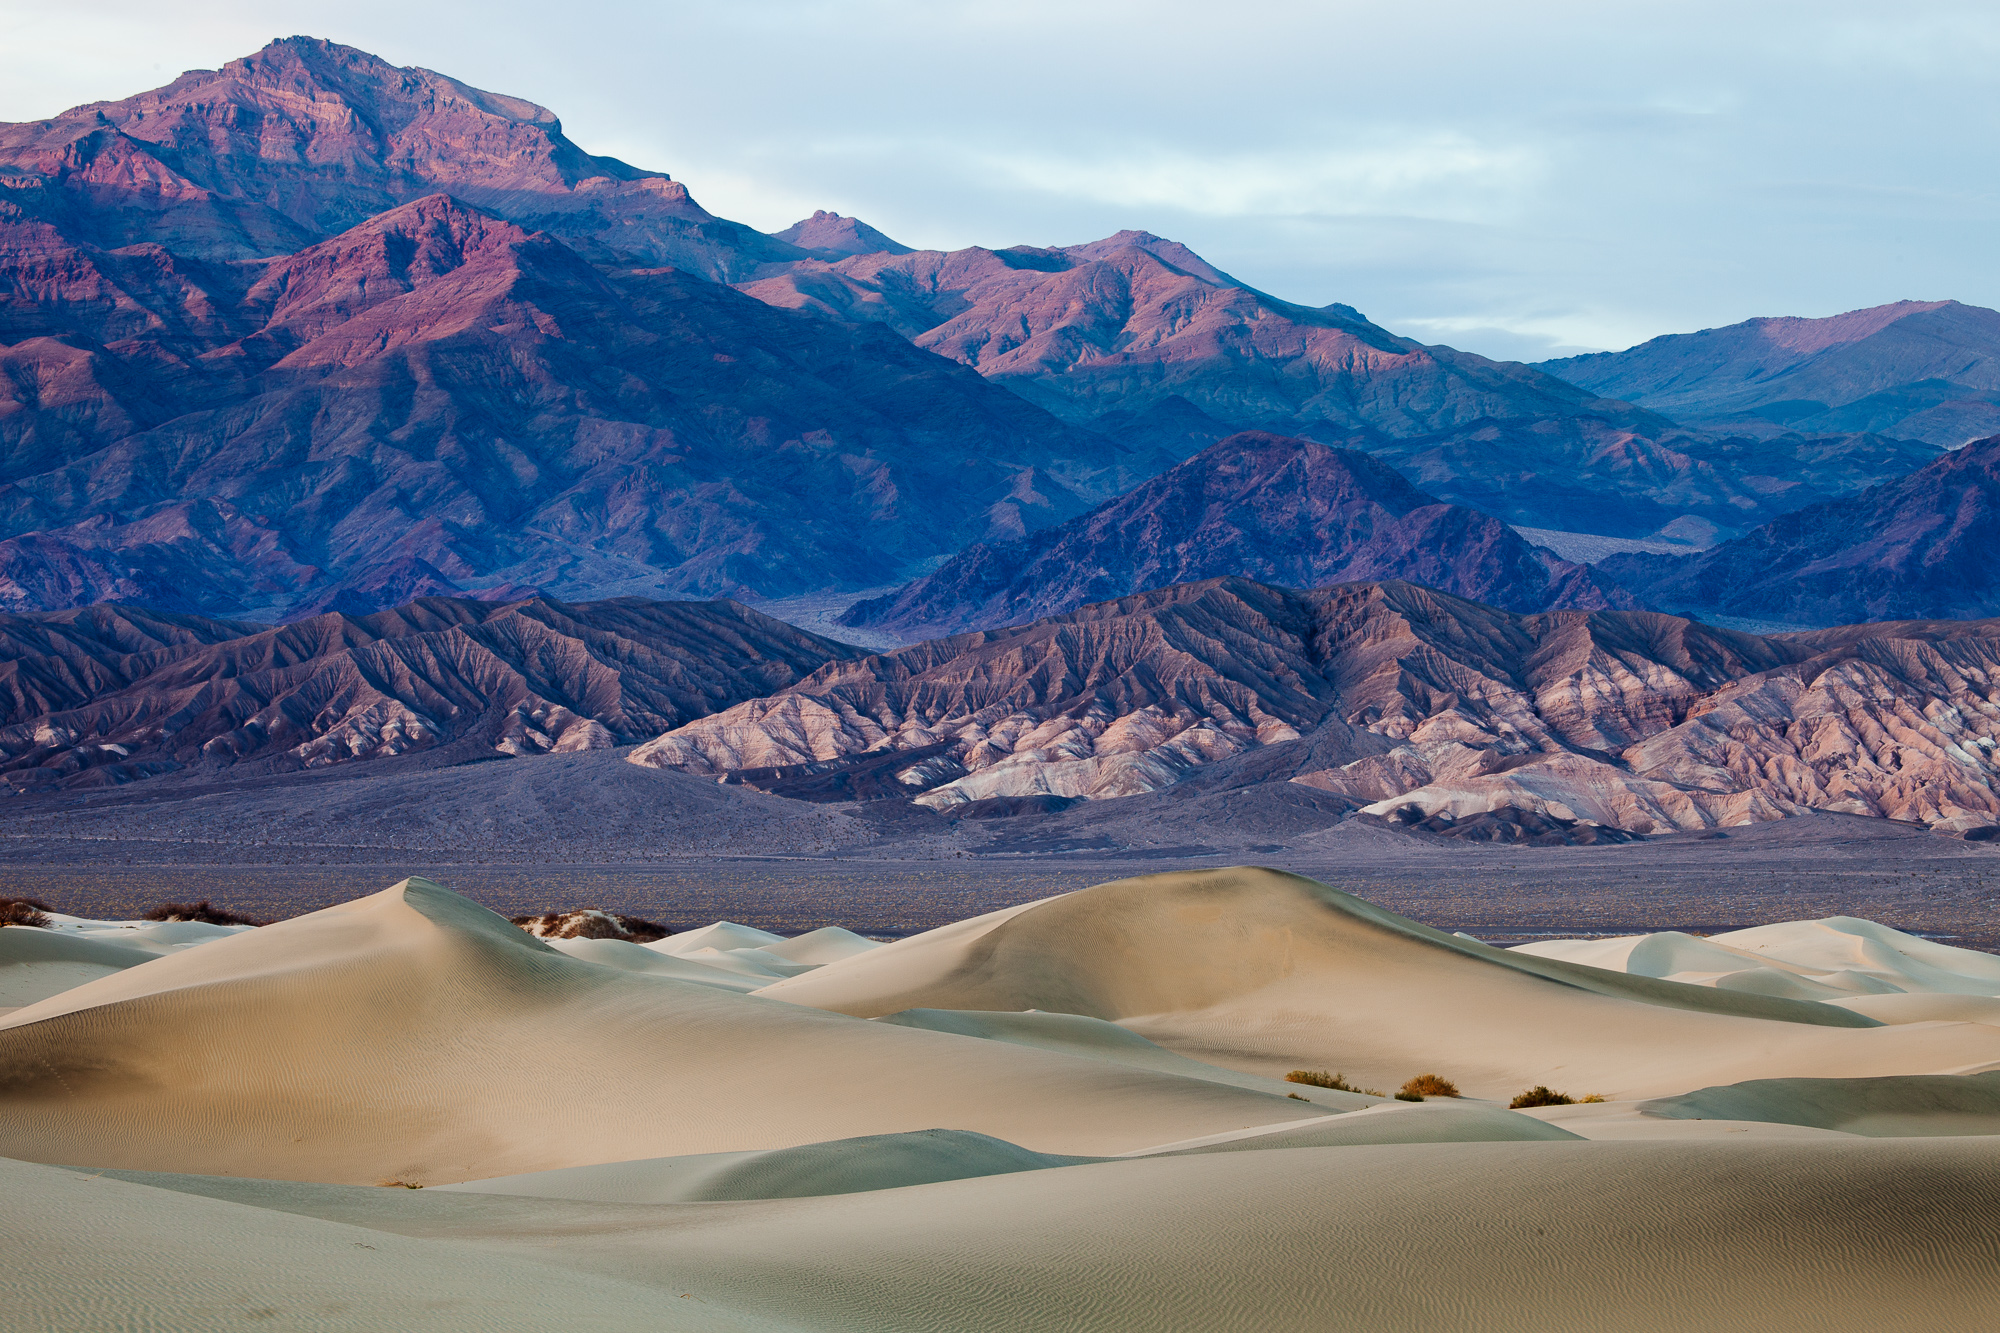 Visitors to Stovepipe Wells are treated to a view of wind carved sand dunes across Mesquite Flat, Death Valley National Park